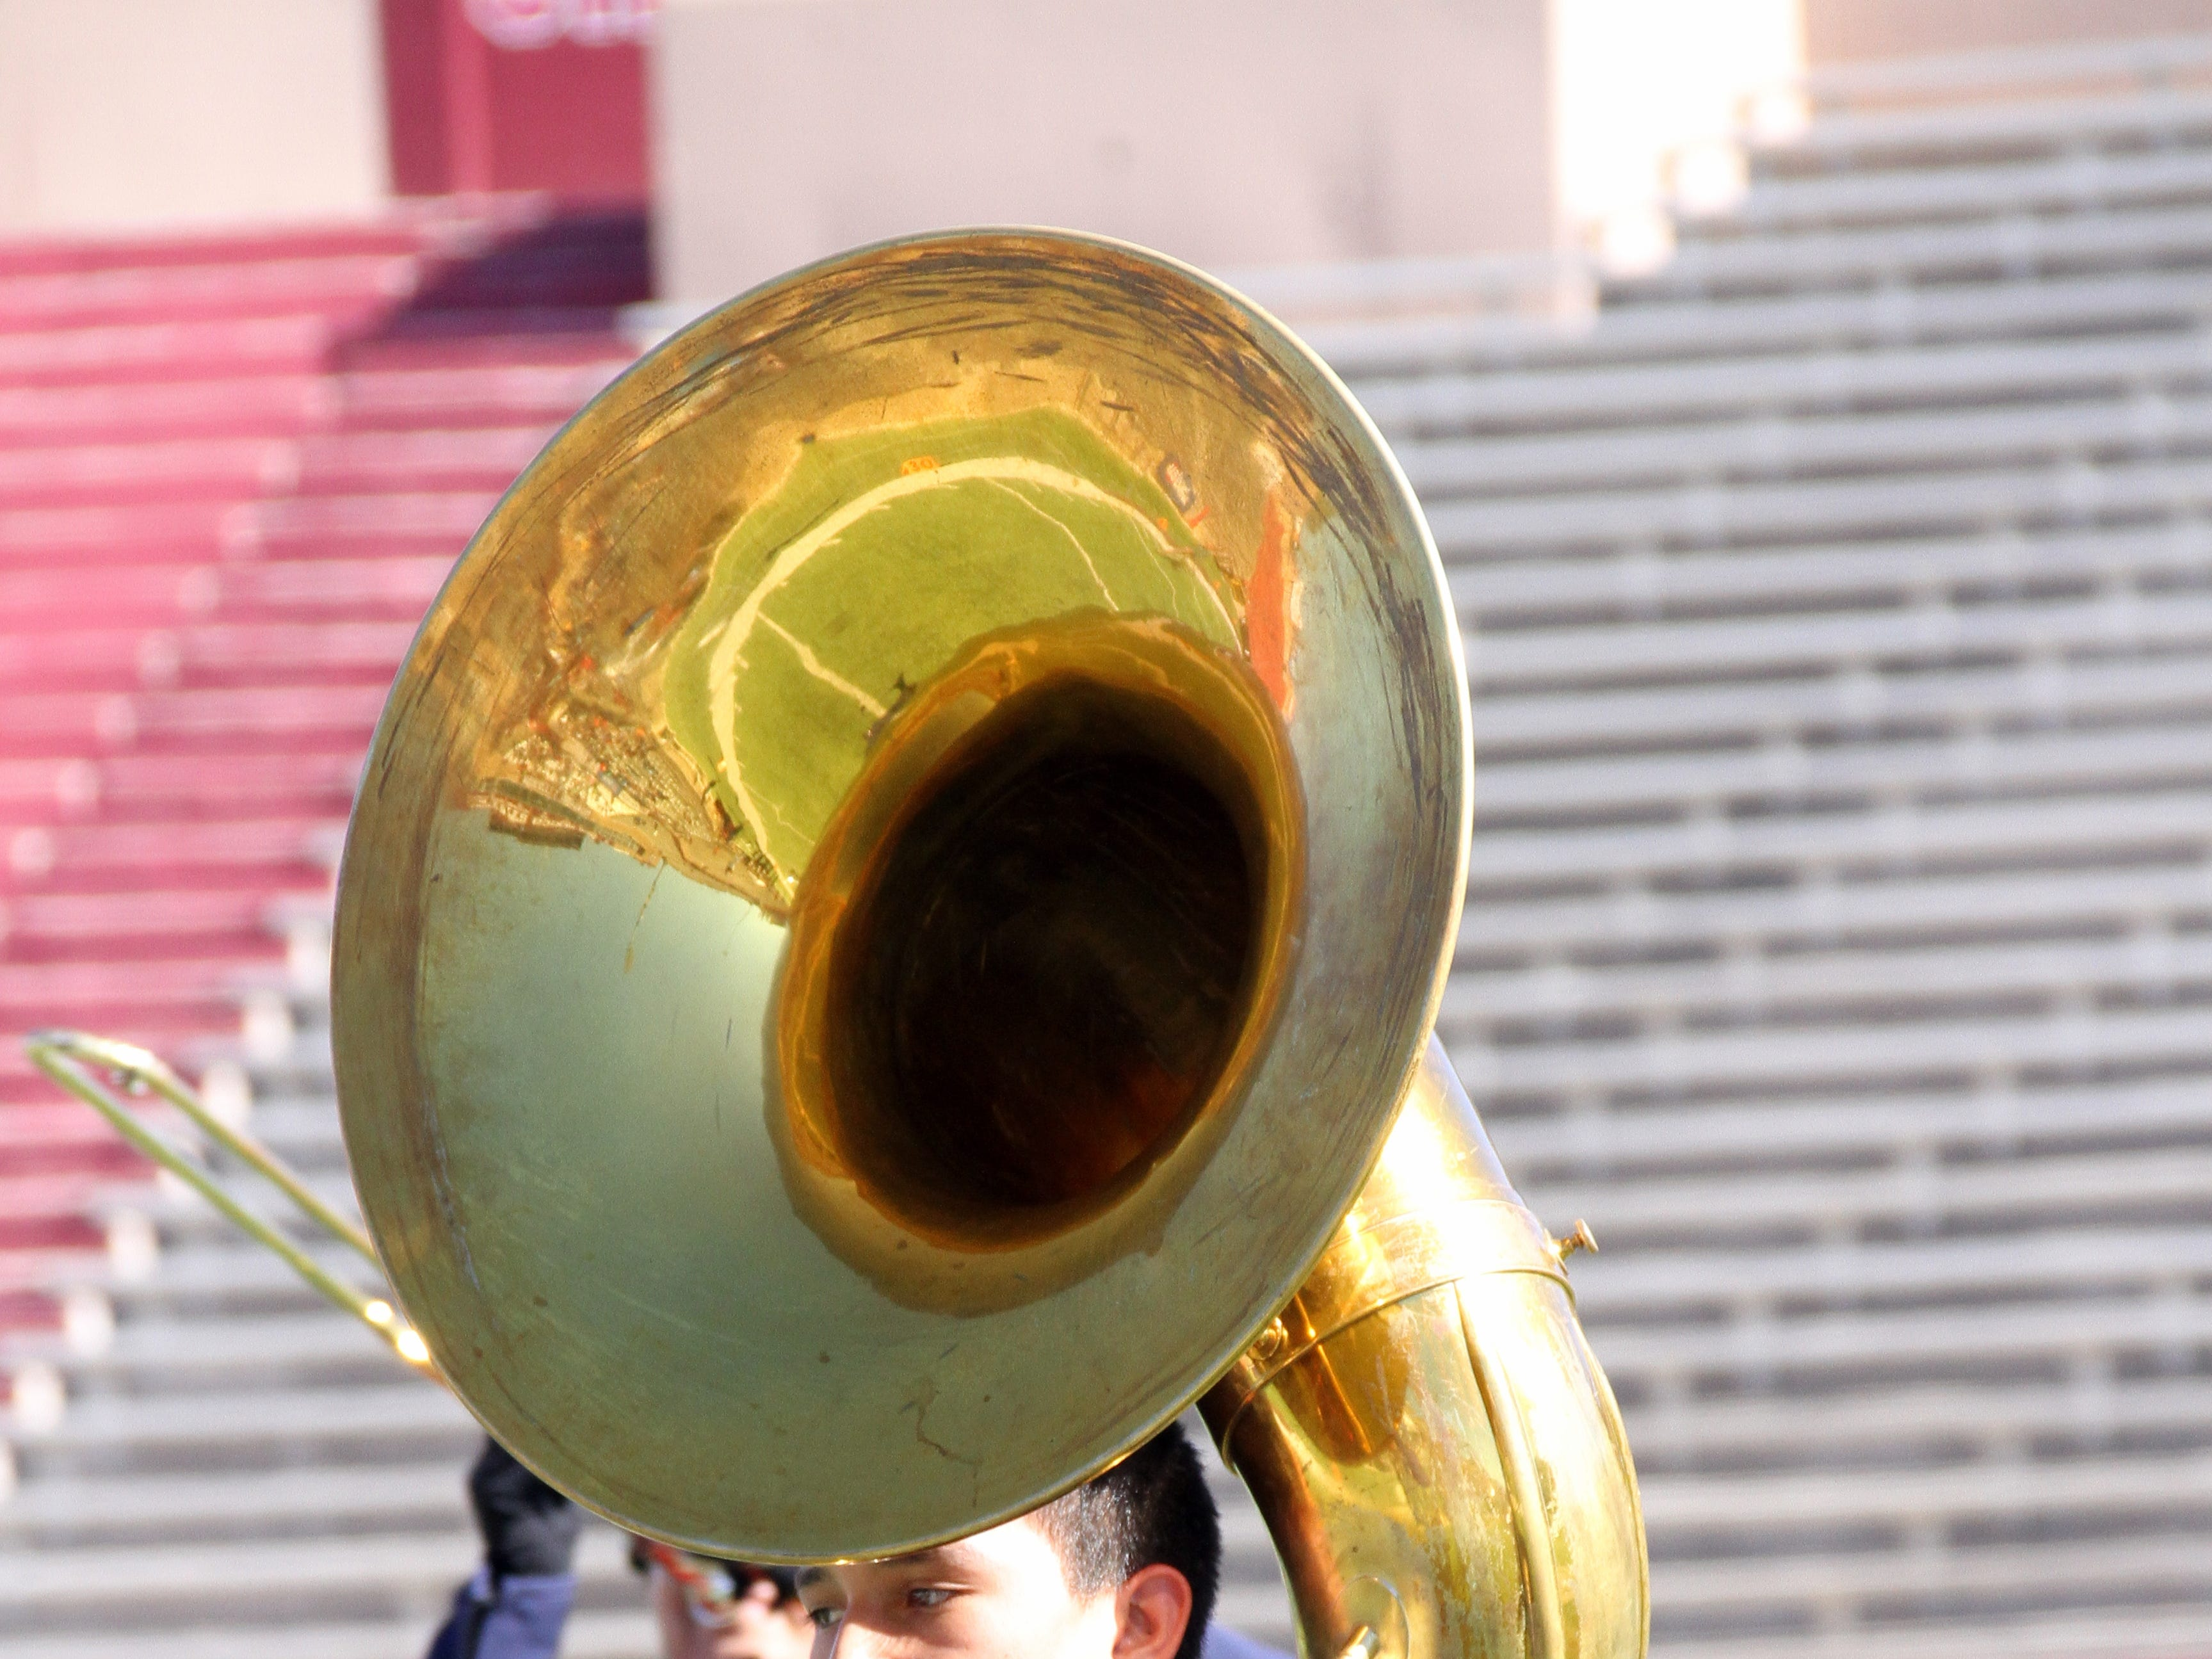 Try marching with this instrument and making it sound sweet.